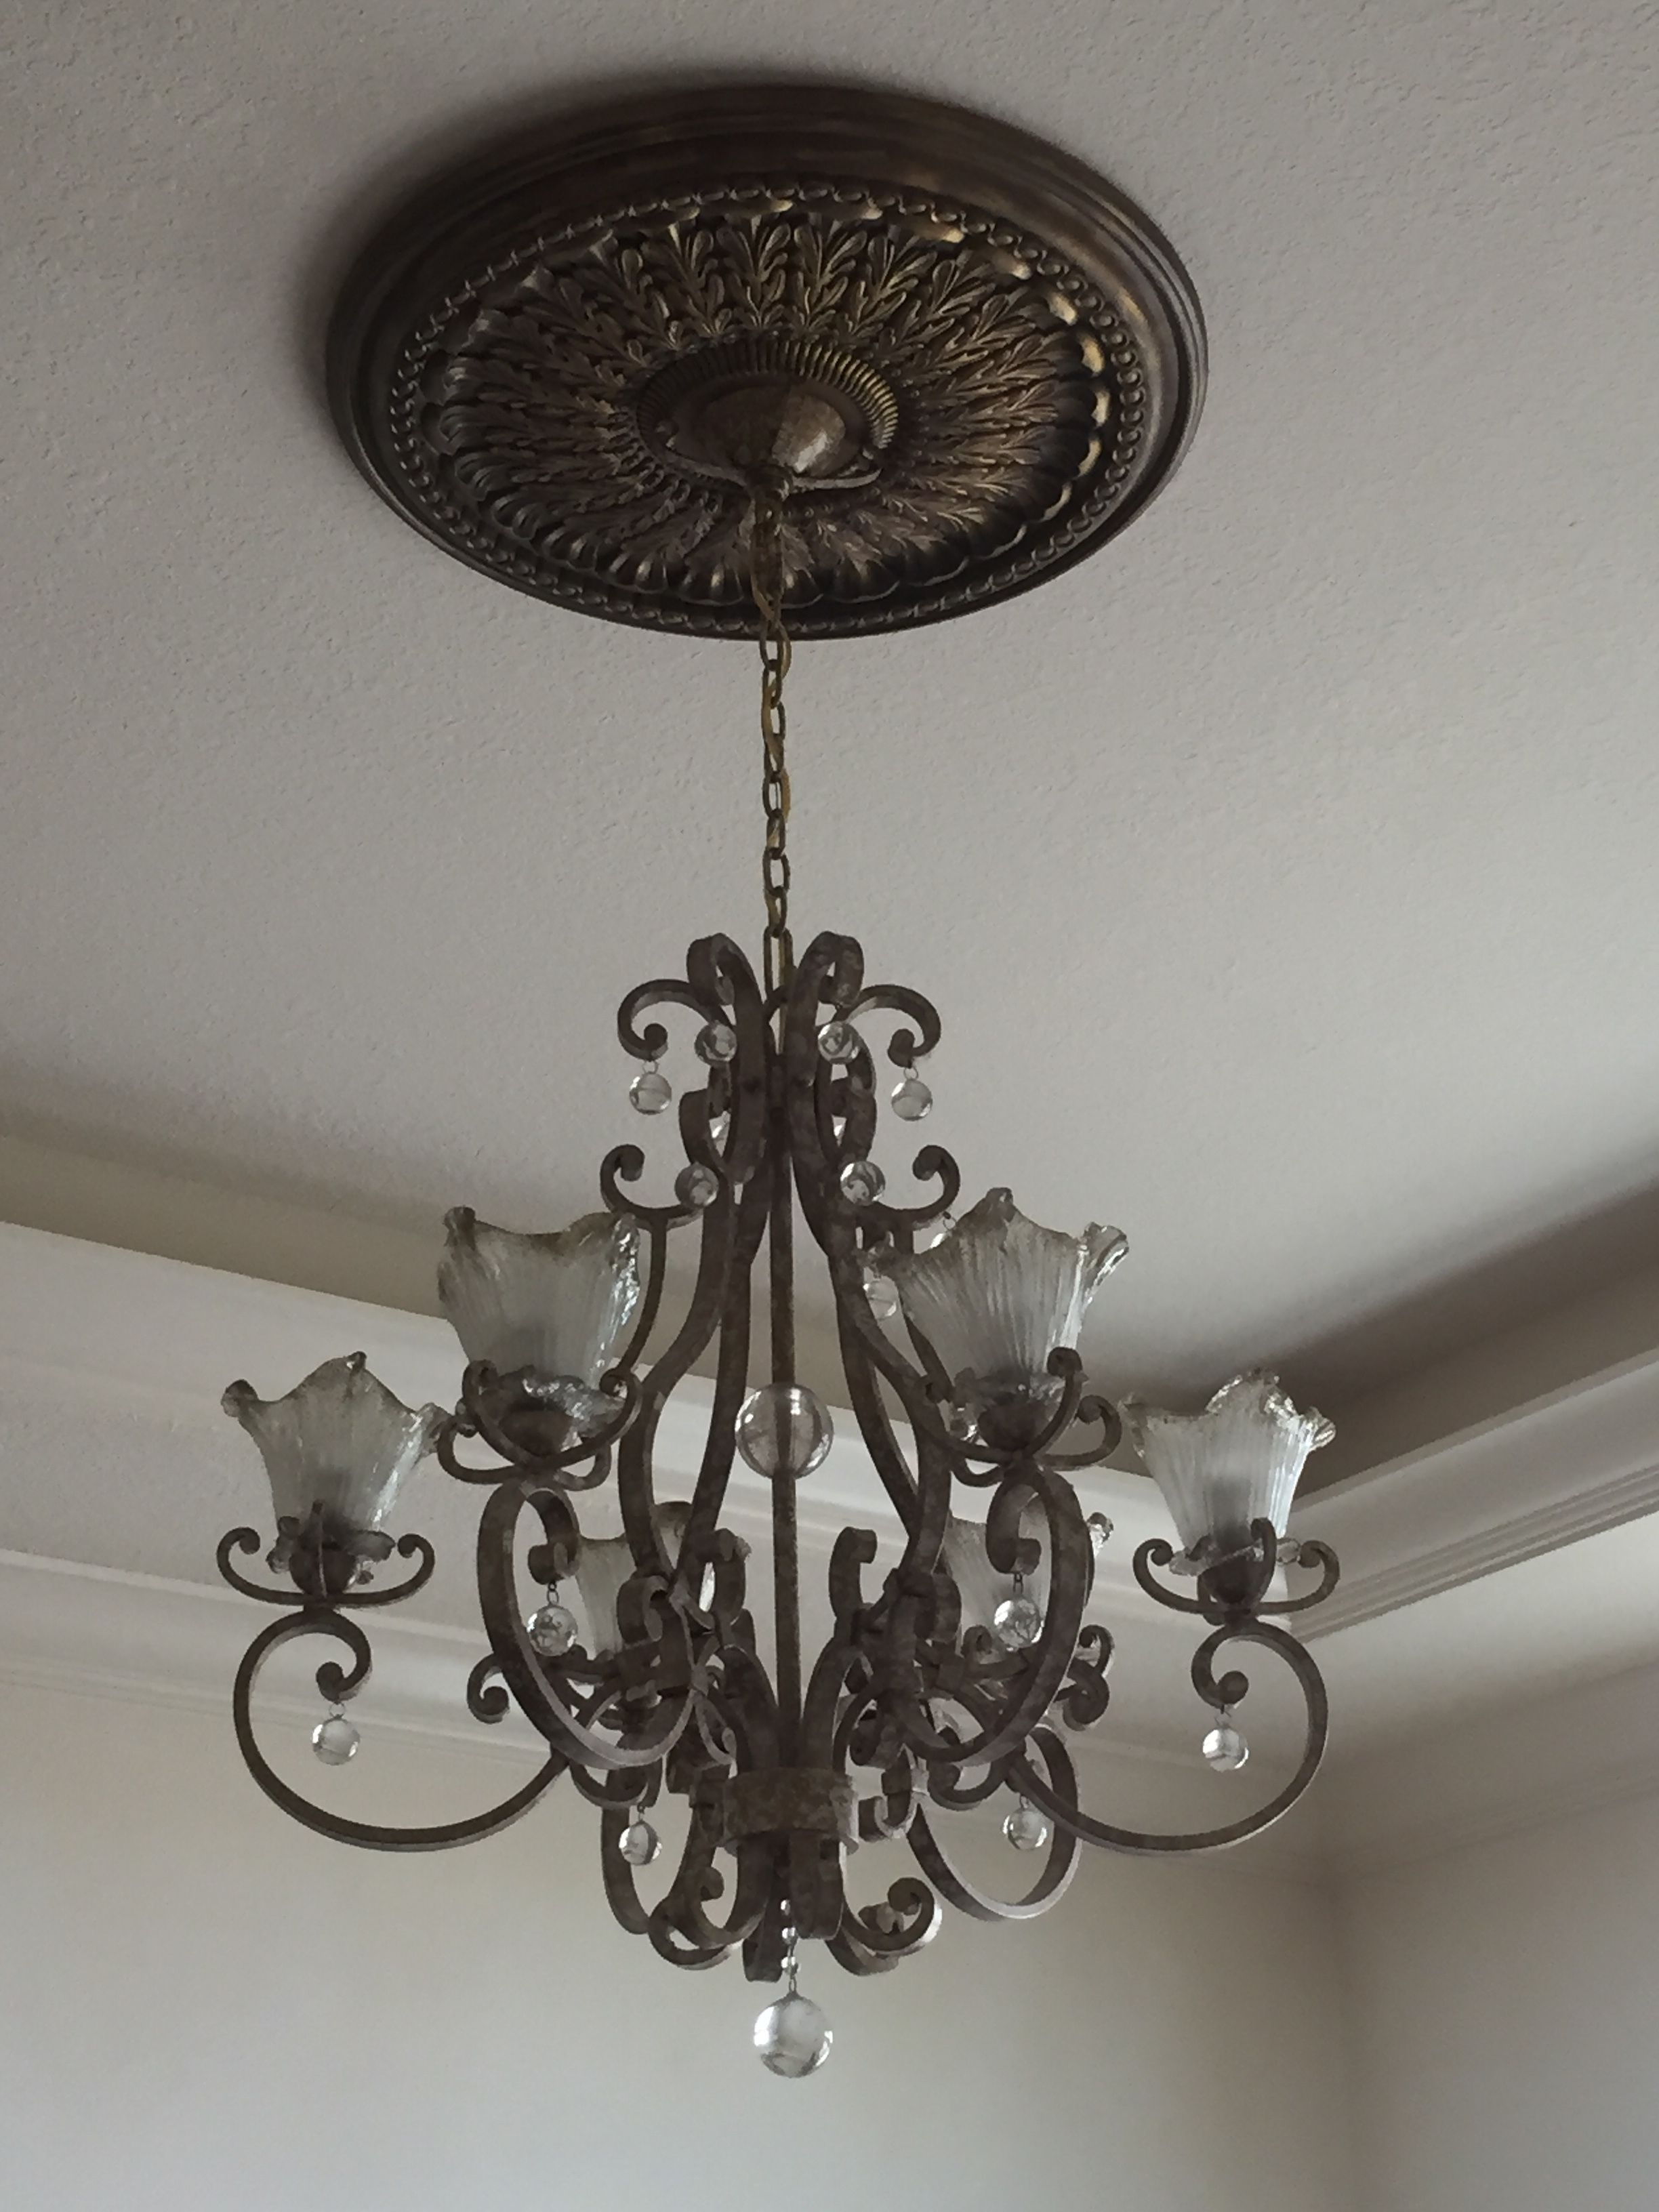 This is the hand blown glass chandelier with ceiling medallion